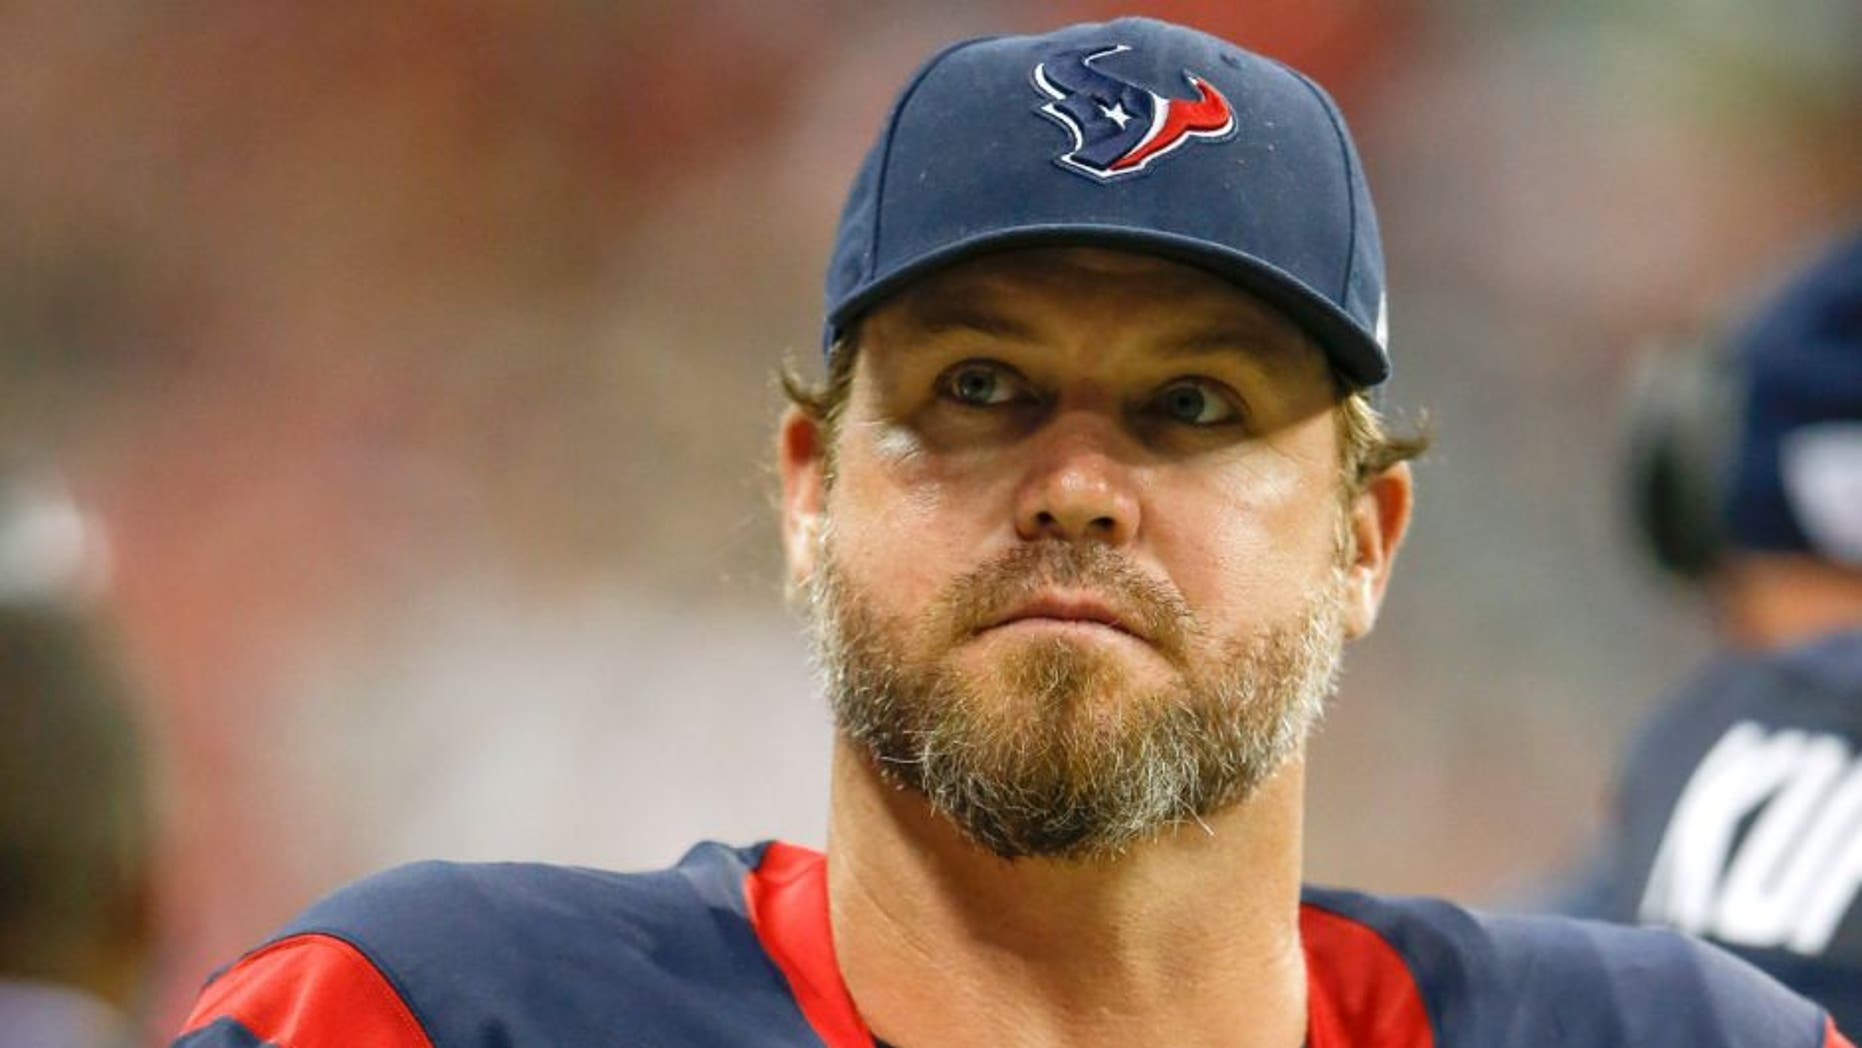 Aug 28, 2014; Houston, TX, USA; Houston Texans punter Shane Lechler (9) during the game against the San Francisco 49ers at NRG Stadium. Mandatory Credit: Kevin Jairaj-USA TODAY Sports